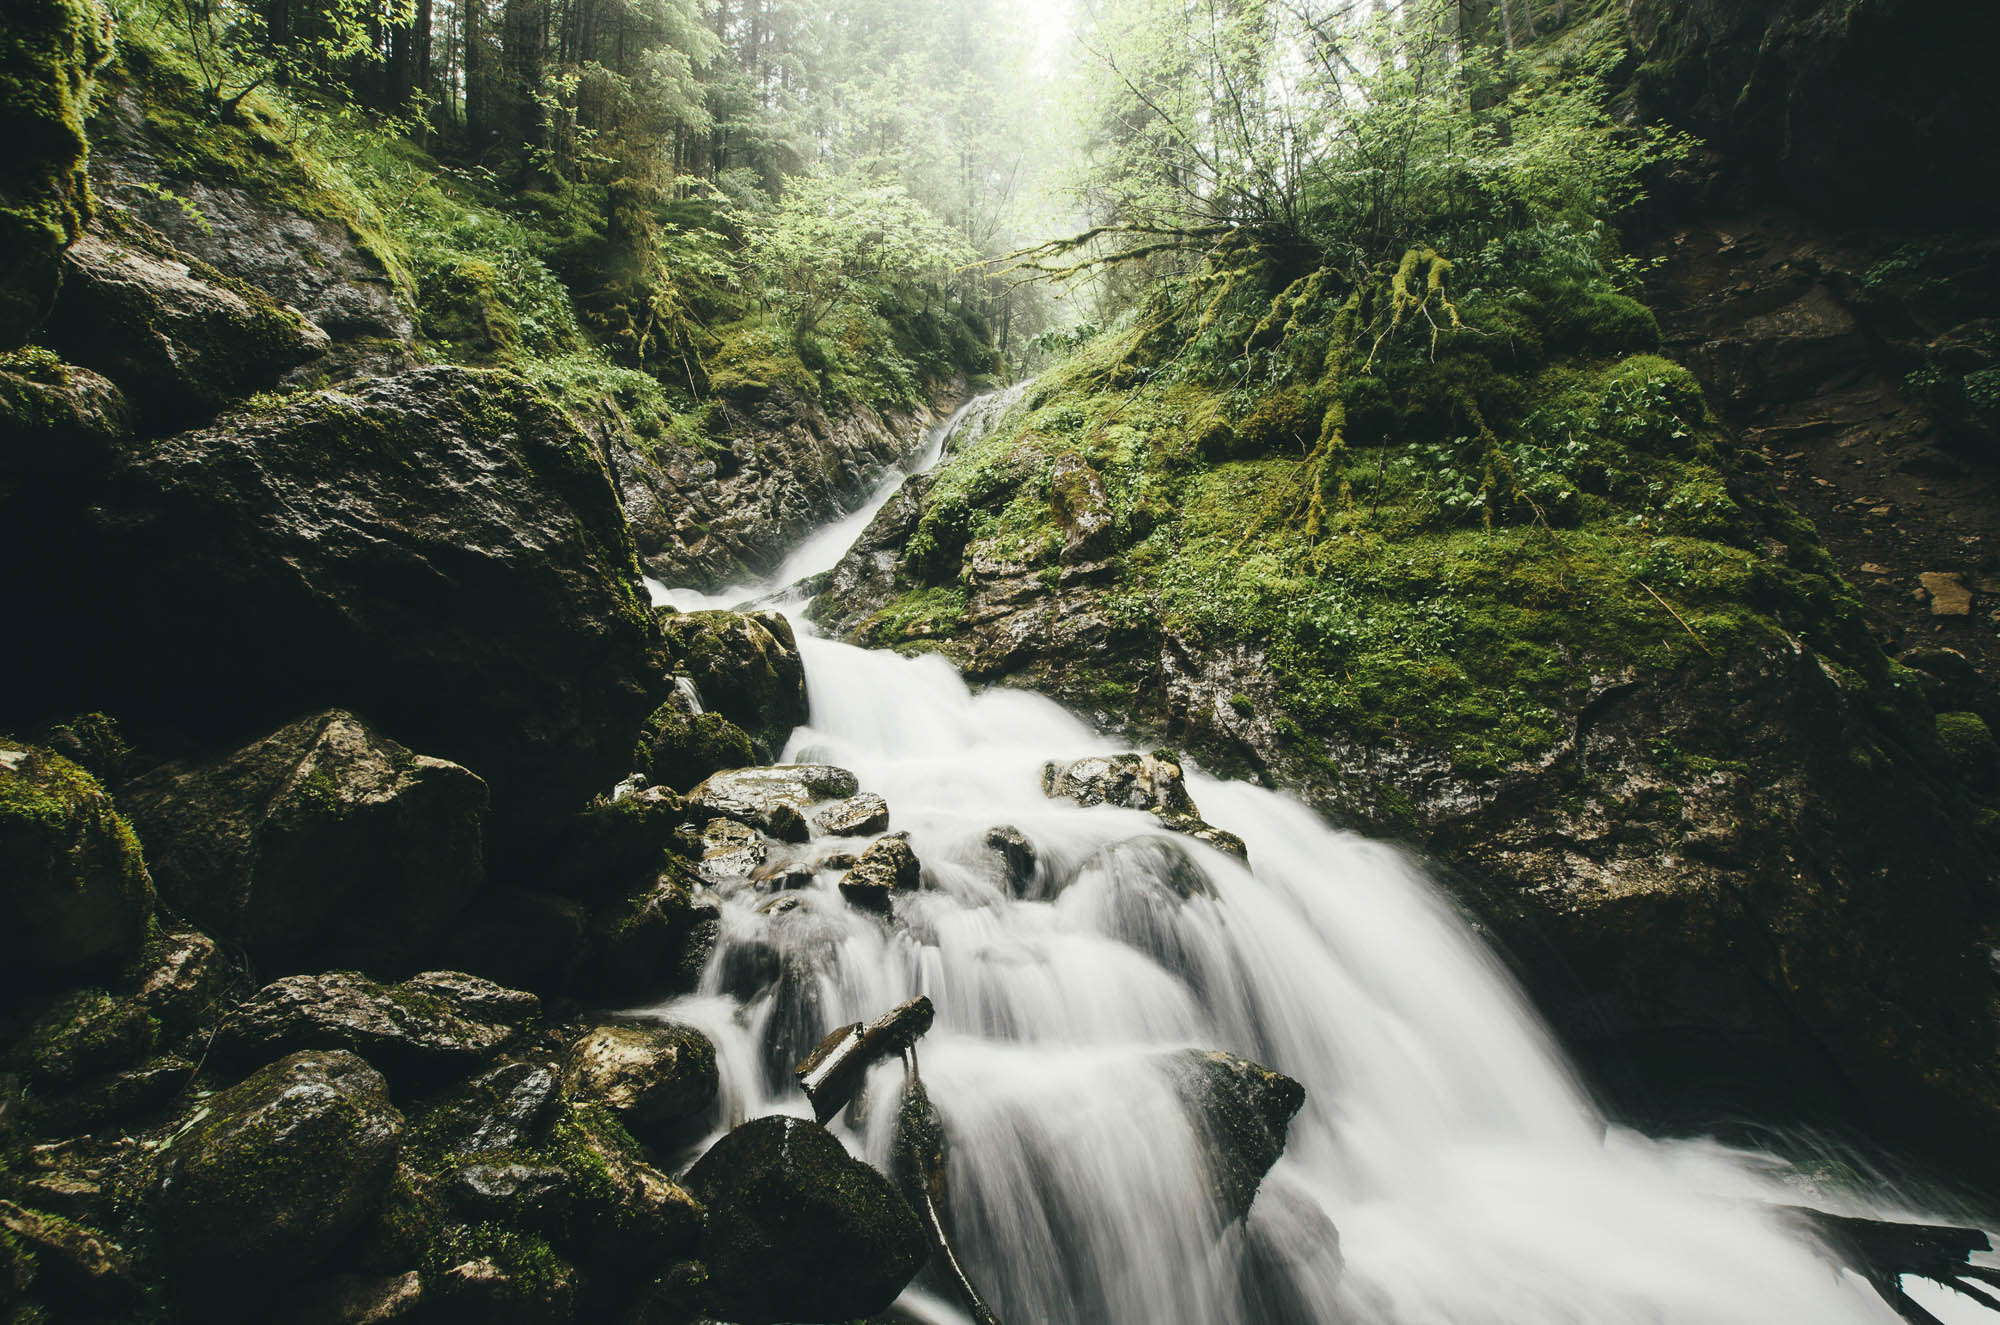 Forest stream waterfall with lush vegetation, wilderness landscape